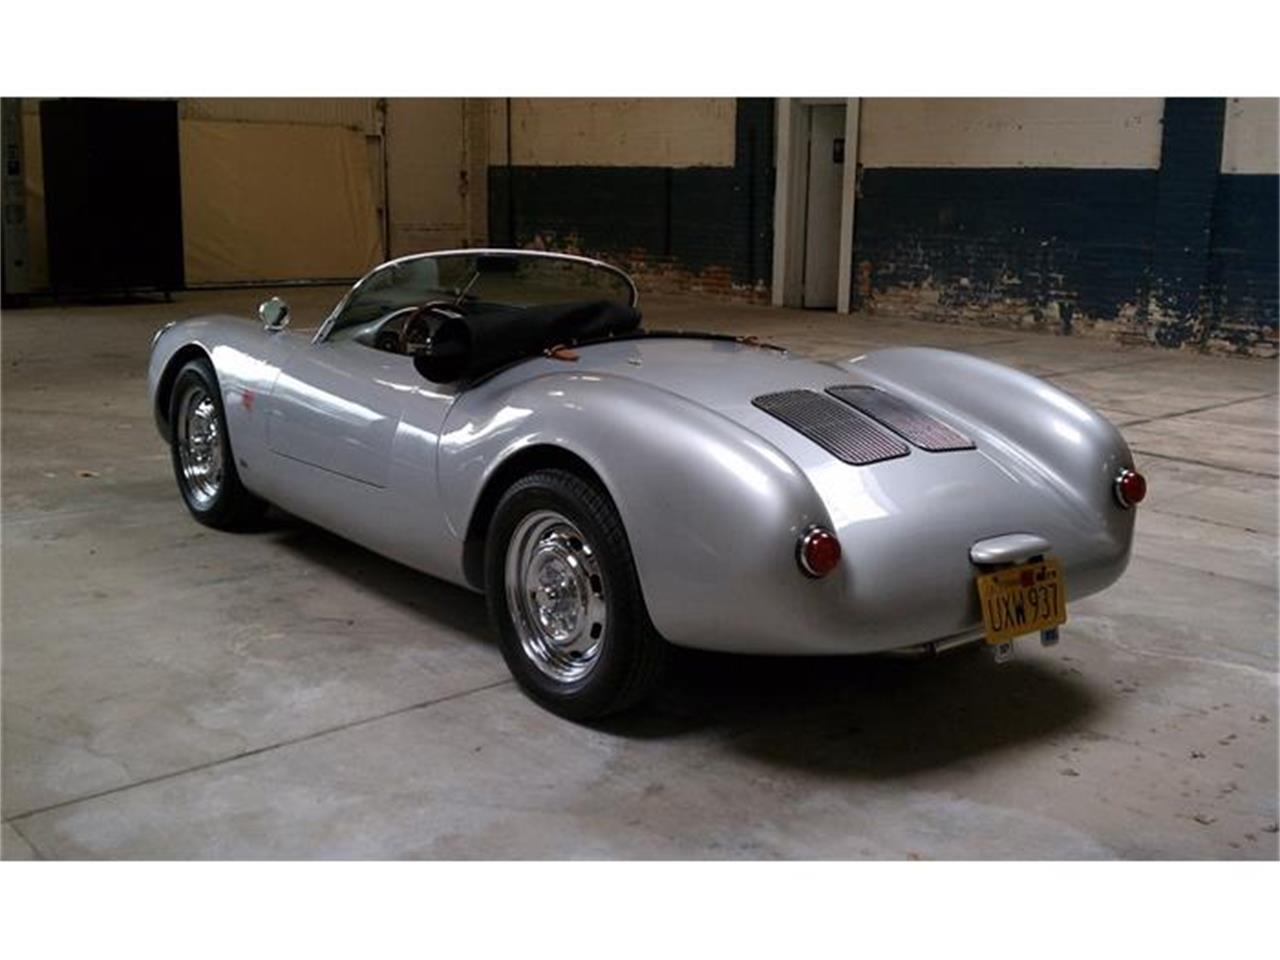 Large Picture of Classic 1955 Porsche 550 Spyder Replica located in California Offered by Beverly Hills Motor Cars - C4HF